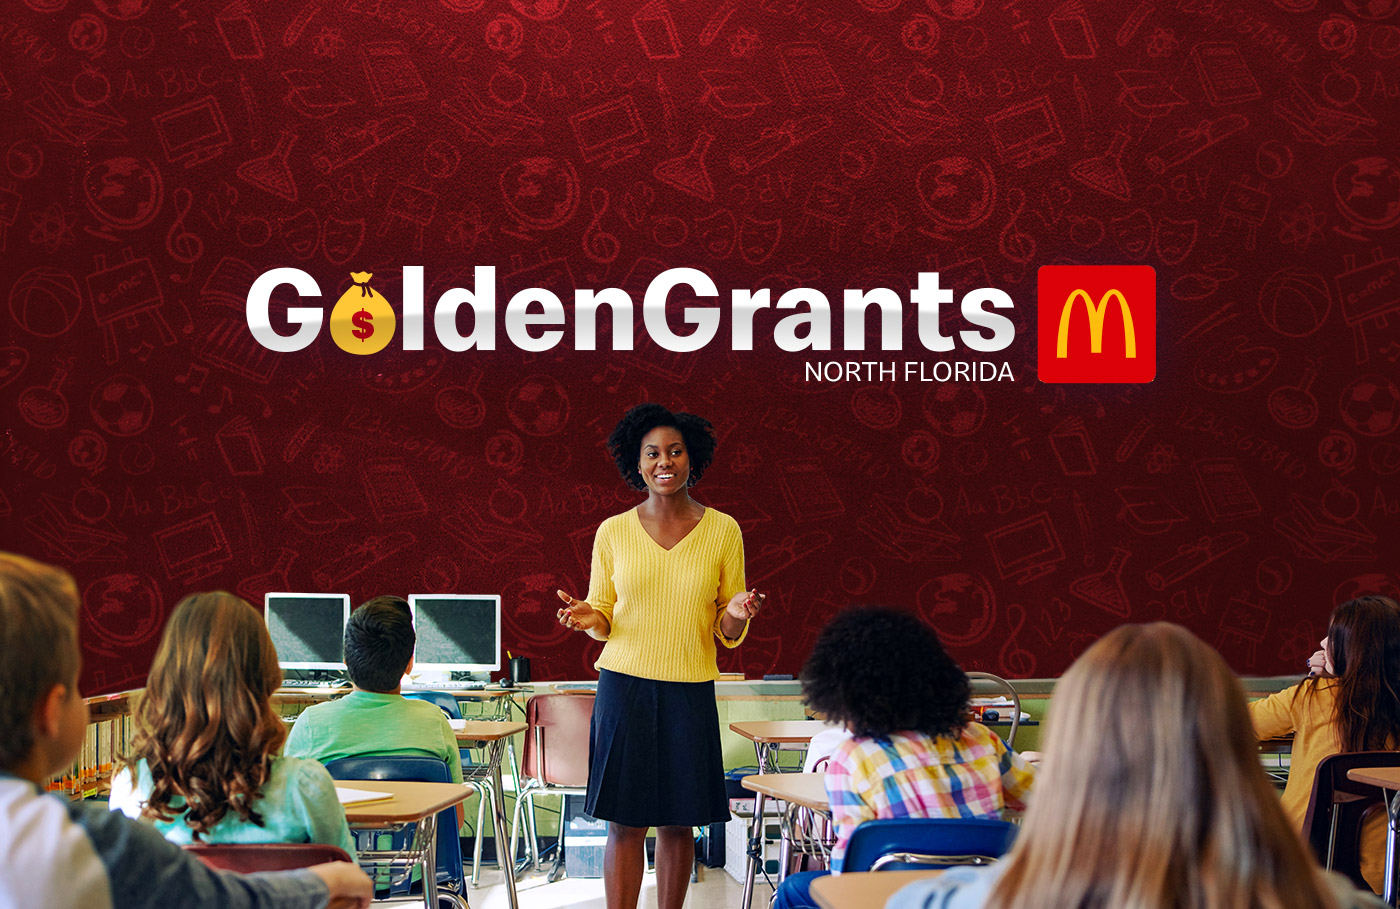 Header Image: Golden Grants